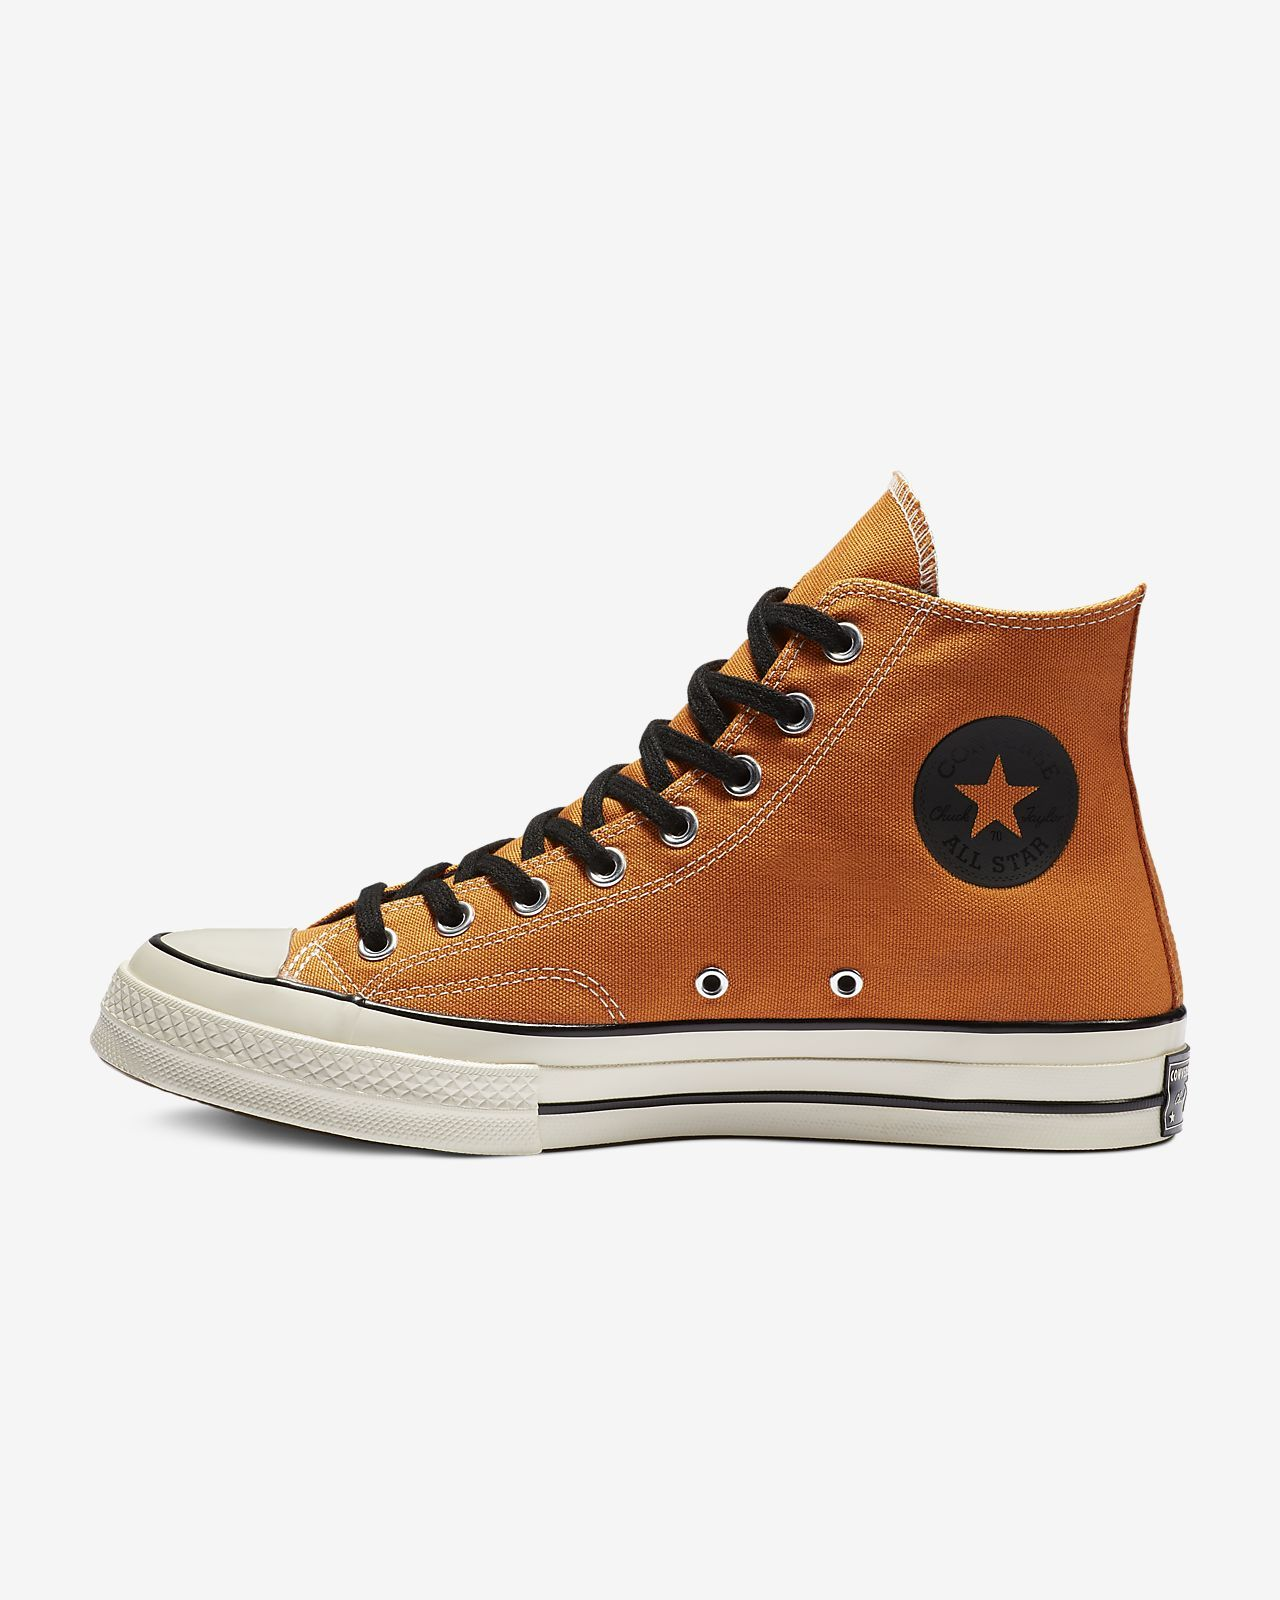 bc20d578c555 Converse Chuck 70 Vintage Canvas High Top Unisex Shoe